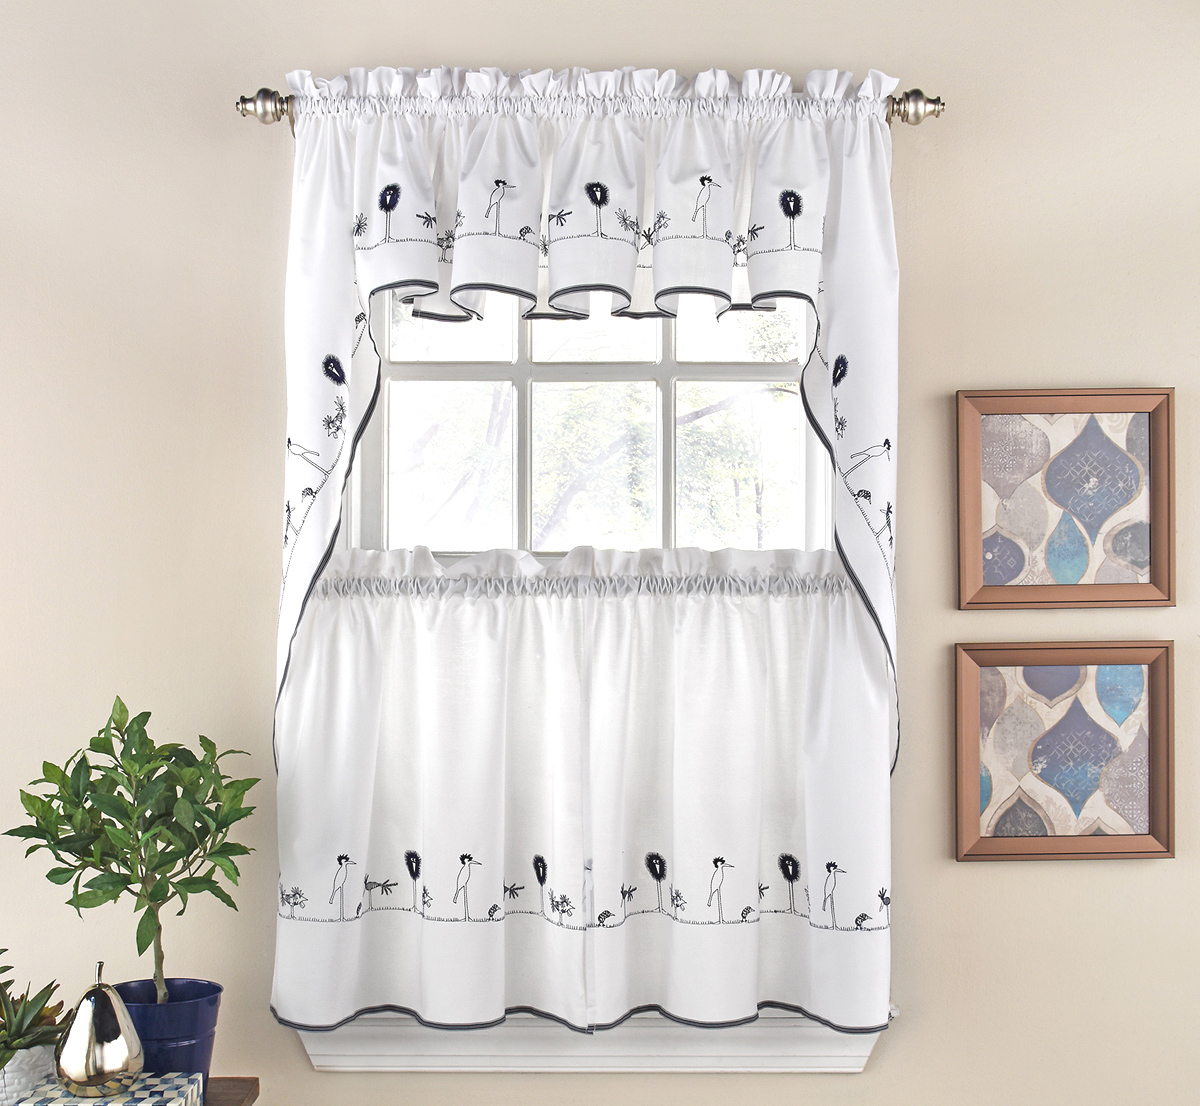 Designer Kitchen Curtains – Thecurtainshop Pertaining To Fashionable Classic Kitchen Curtain Sets (View 14 of 20)